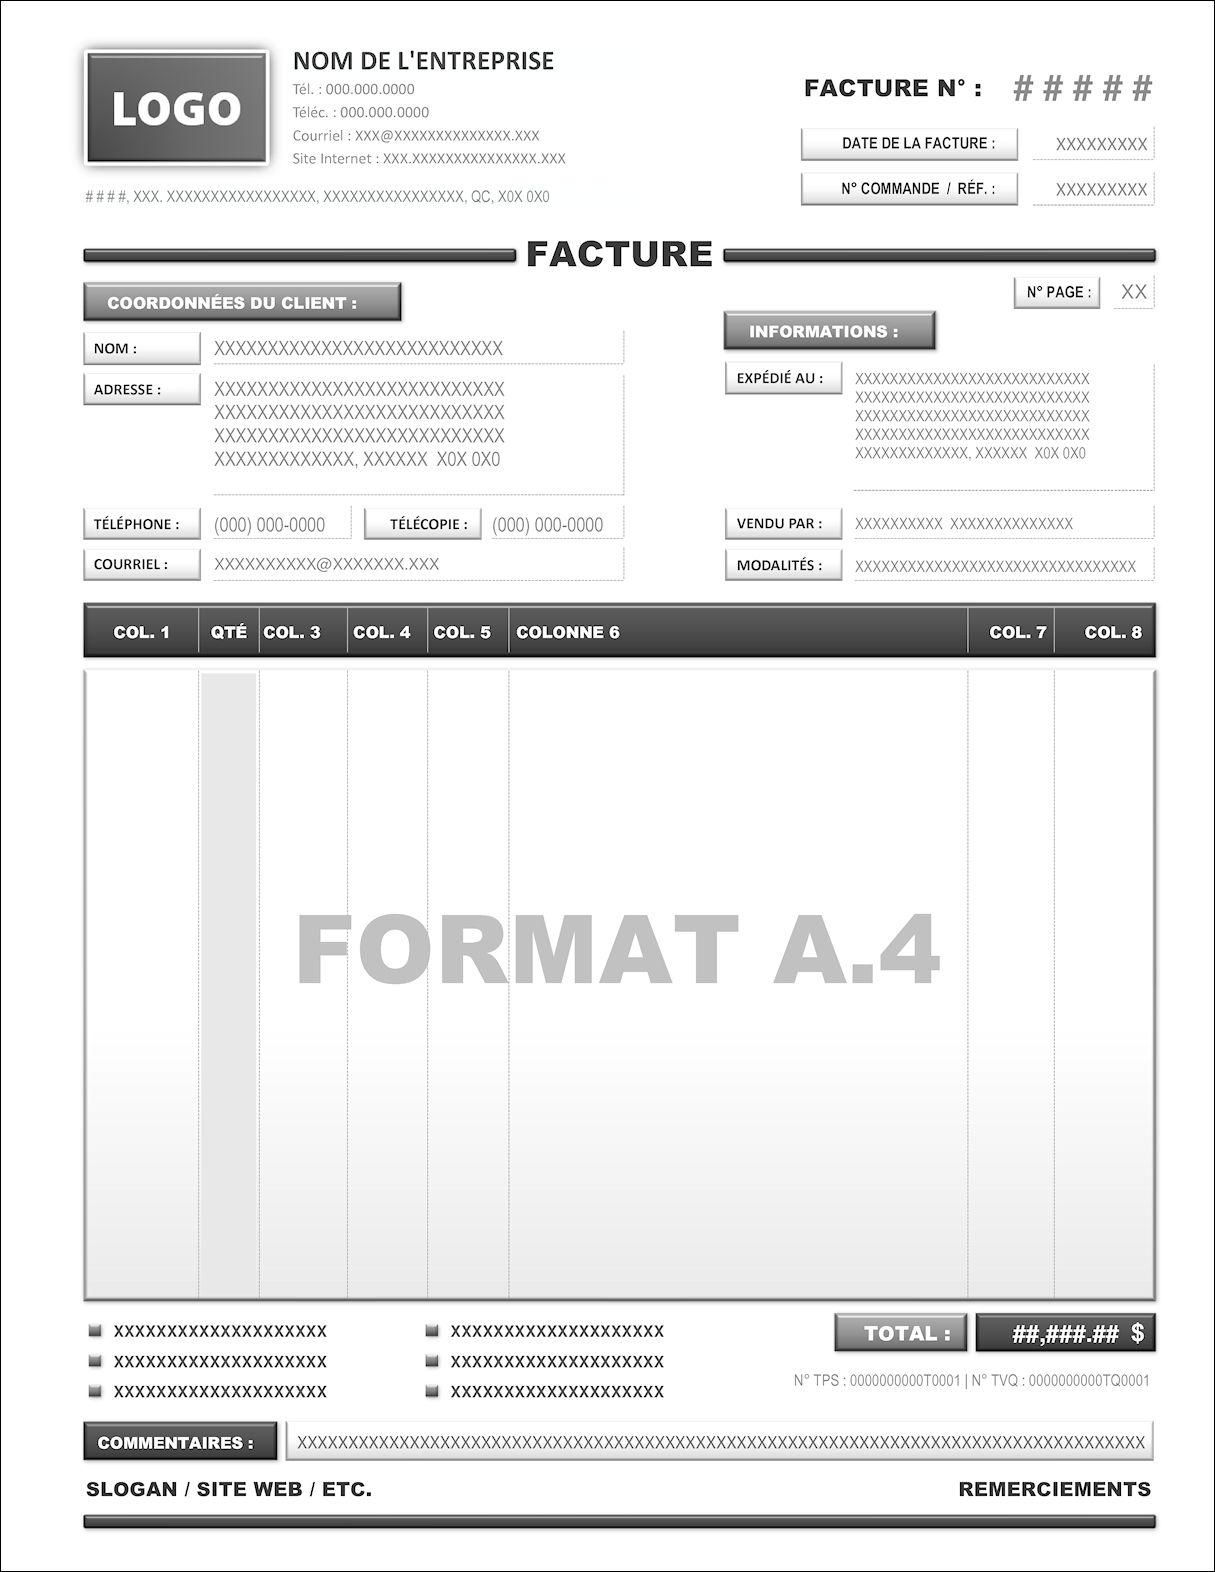 FORMAT A.4